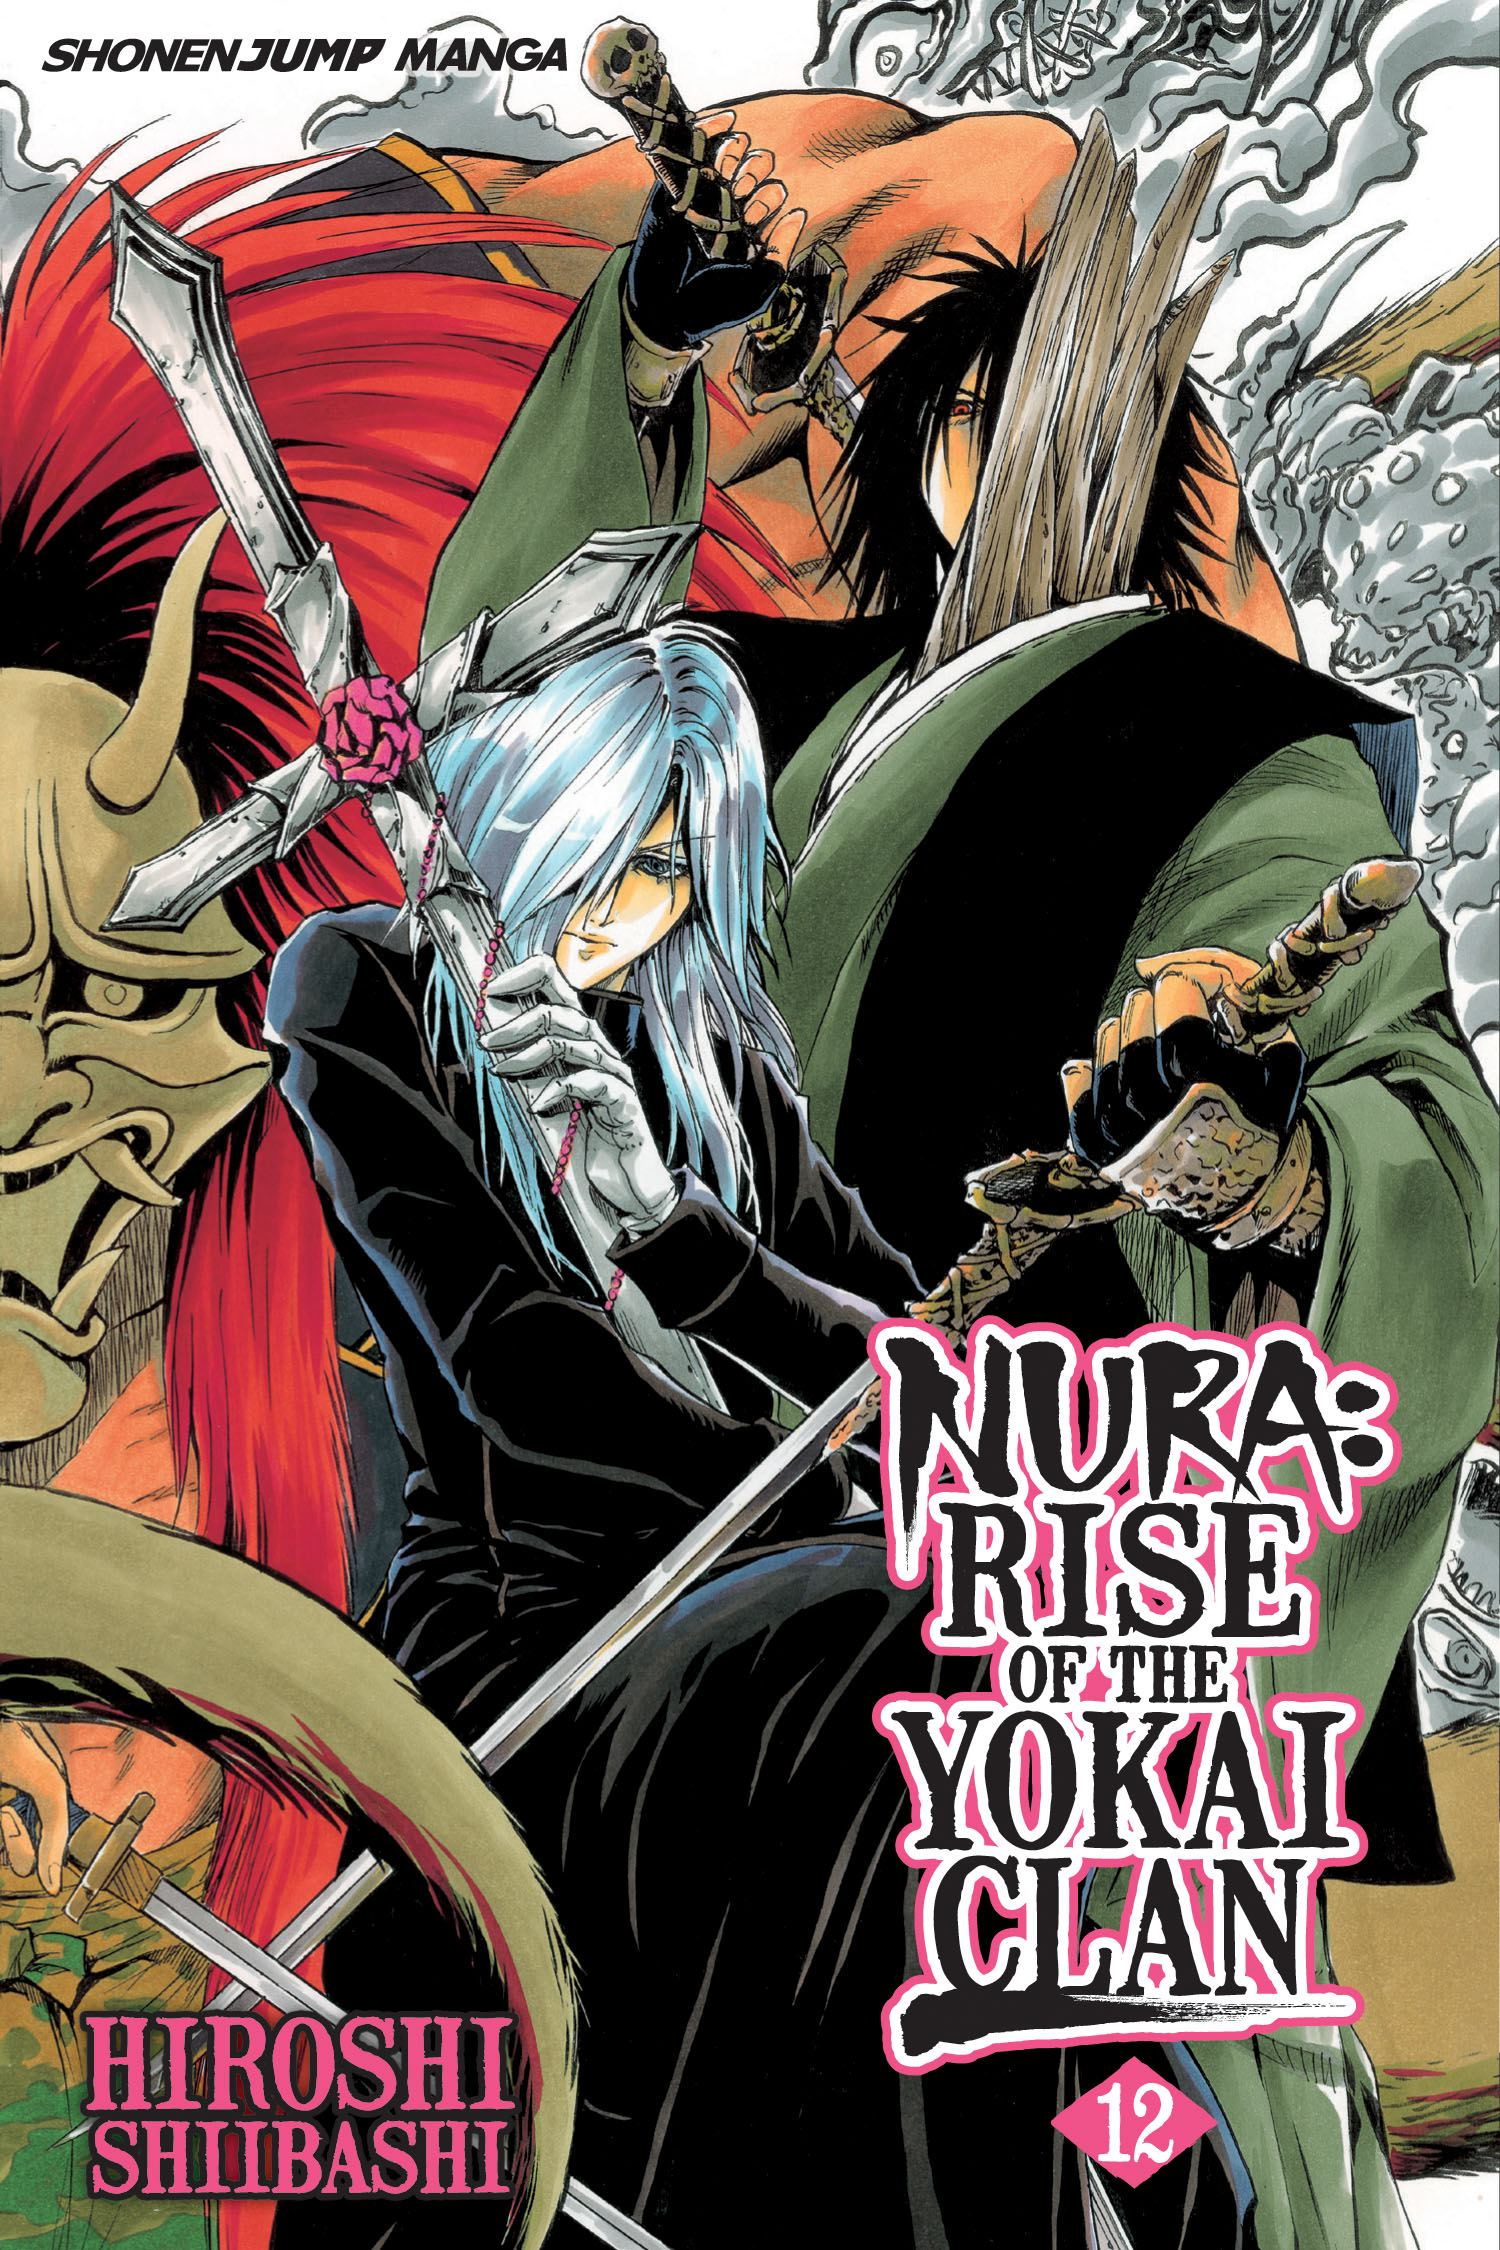 Nura-rise-of-the-yokai-clan-vol-12-9781421541419_hr